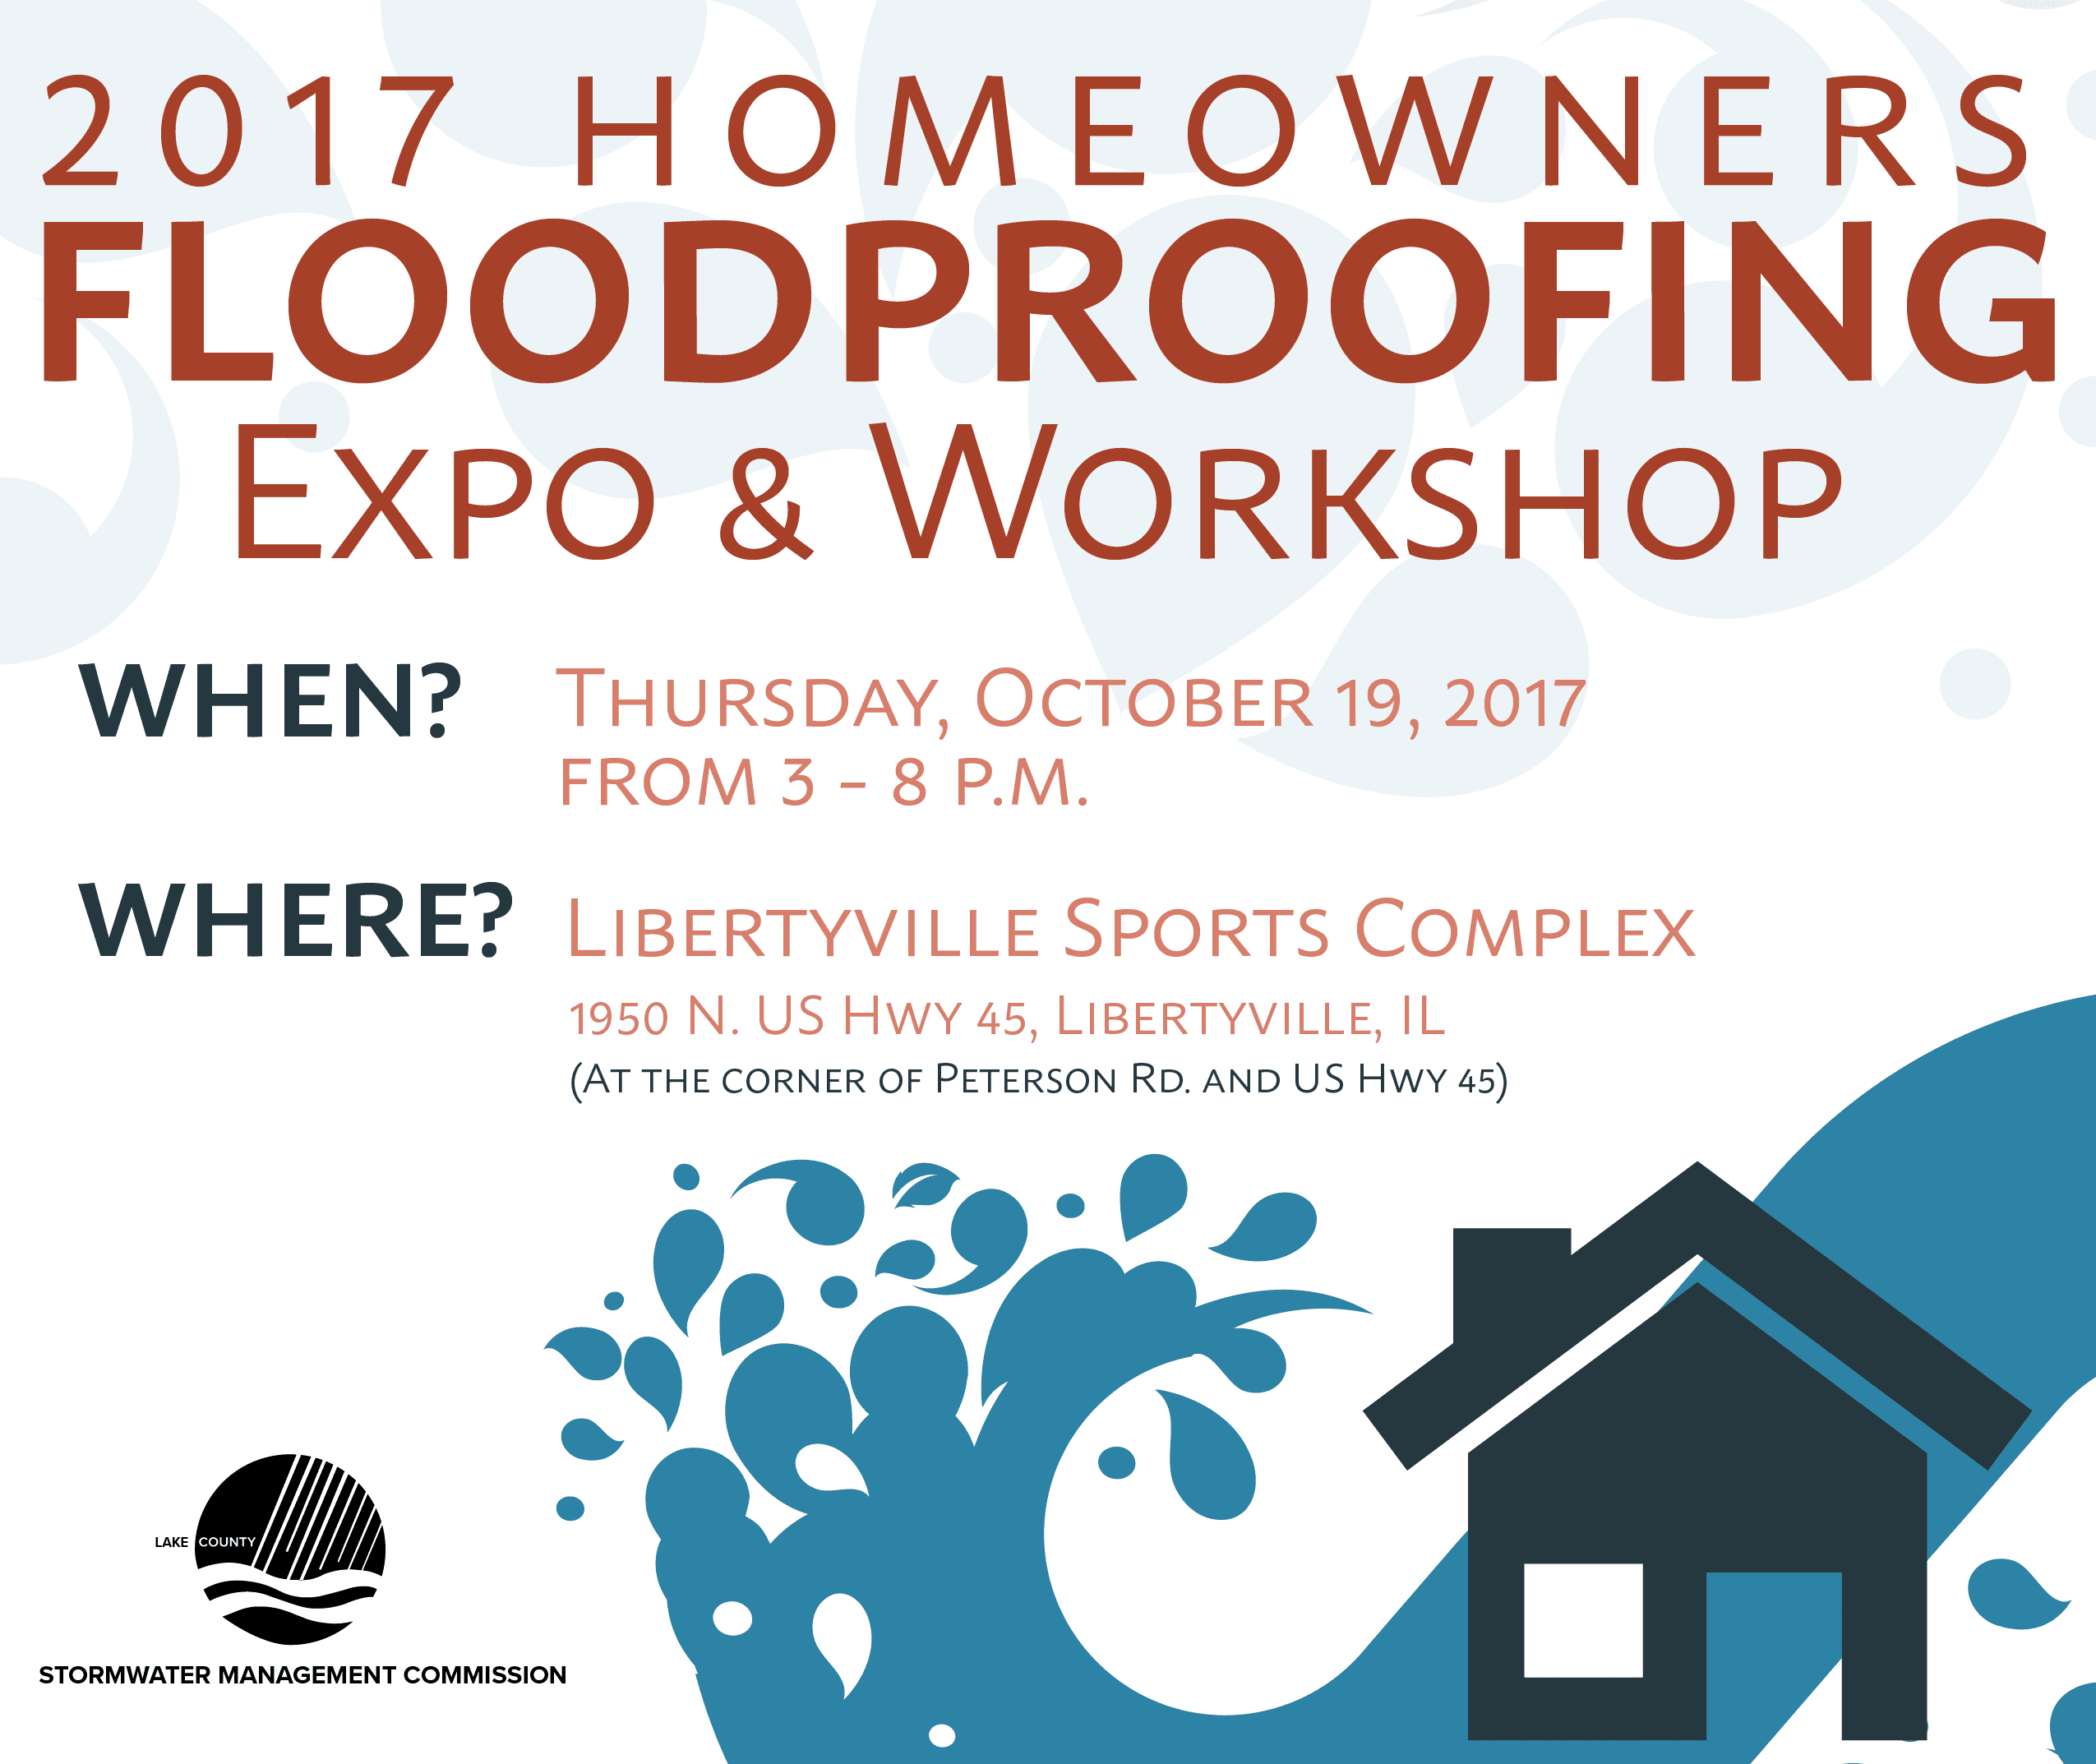 Lake County Hosts Homeowners Floodproofing Expo and Workshop: Oct. 19, 2017